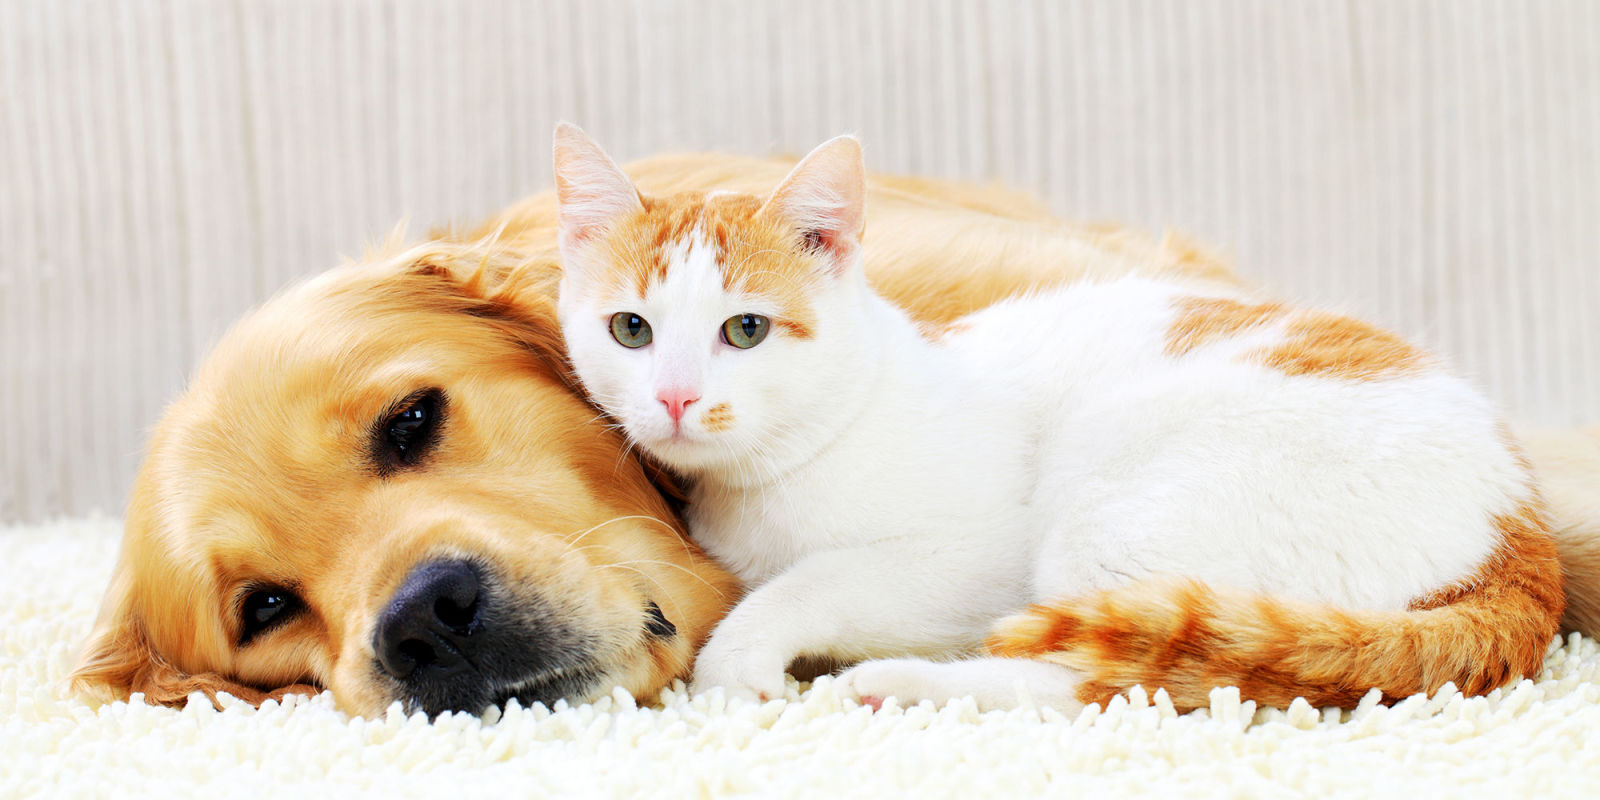 The Big Differences Between Dog And Cat People Revealed